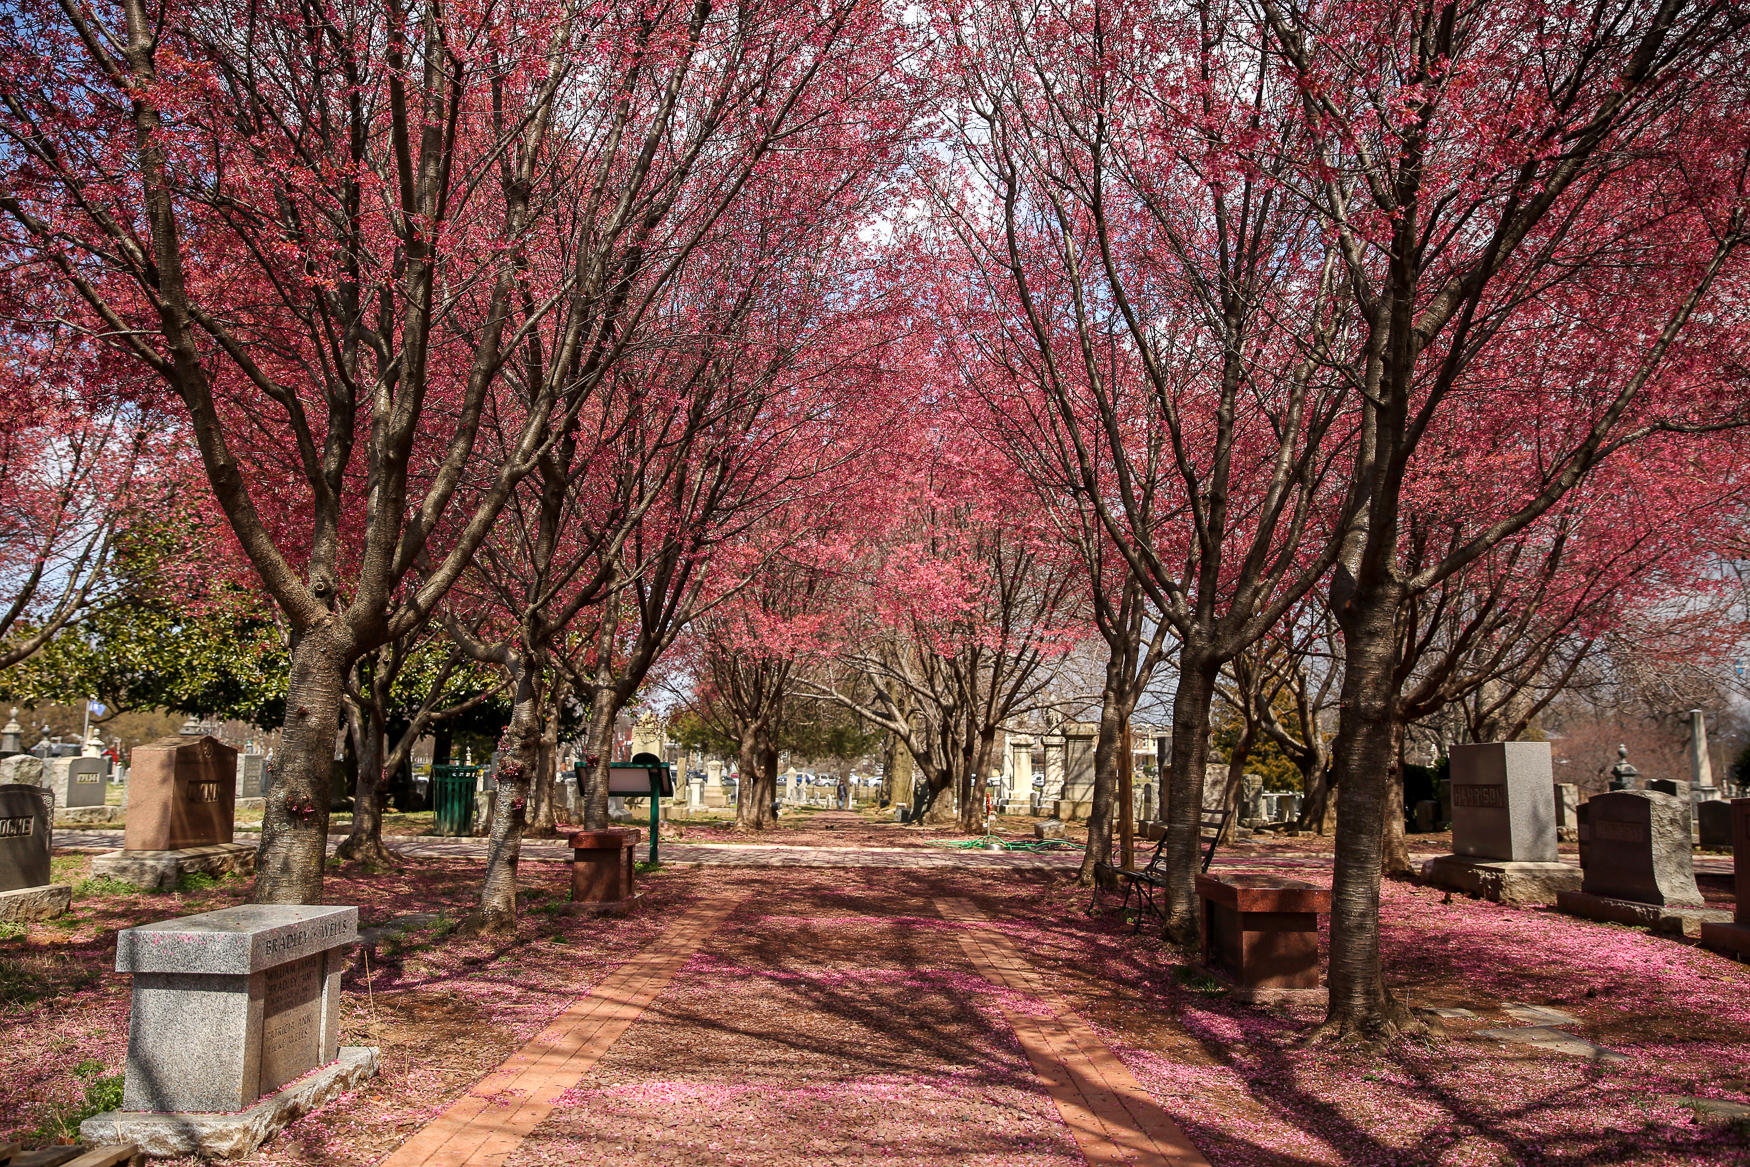 Congressional Cemetery has dozens of blooming cherry trees. The trees typically boom before those around the Tidal Basin, so they're currently full of stunning pink flowers. Plus, you can bring your dog if they're registered to use the cemetery as an off-leash dog park. (Amanda Andrade-Rhoades/DC Refined)